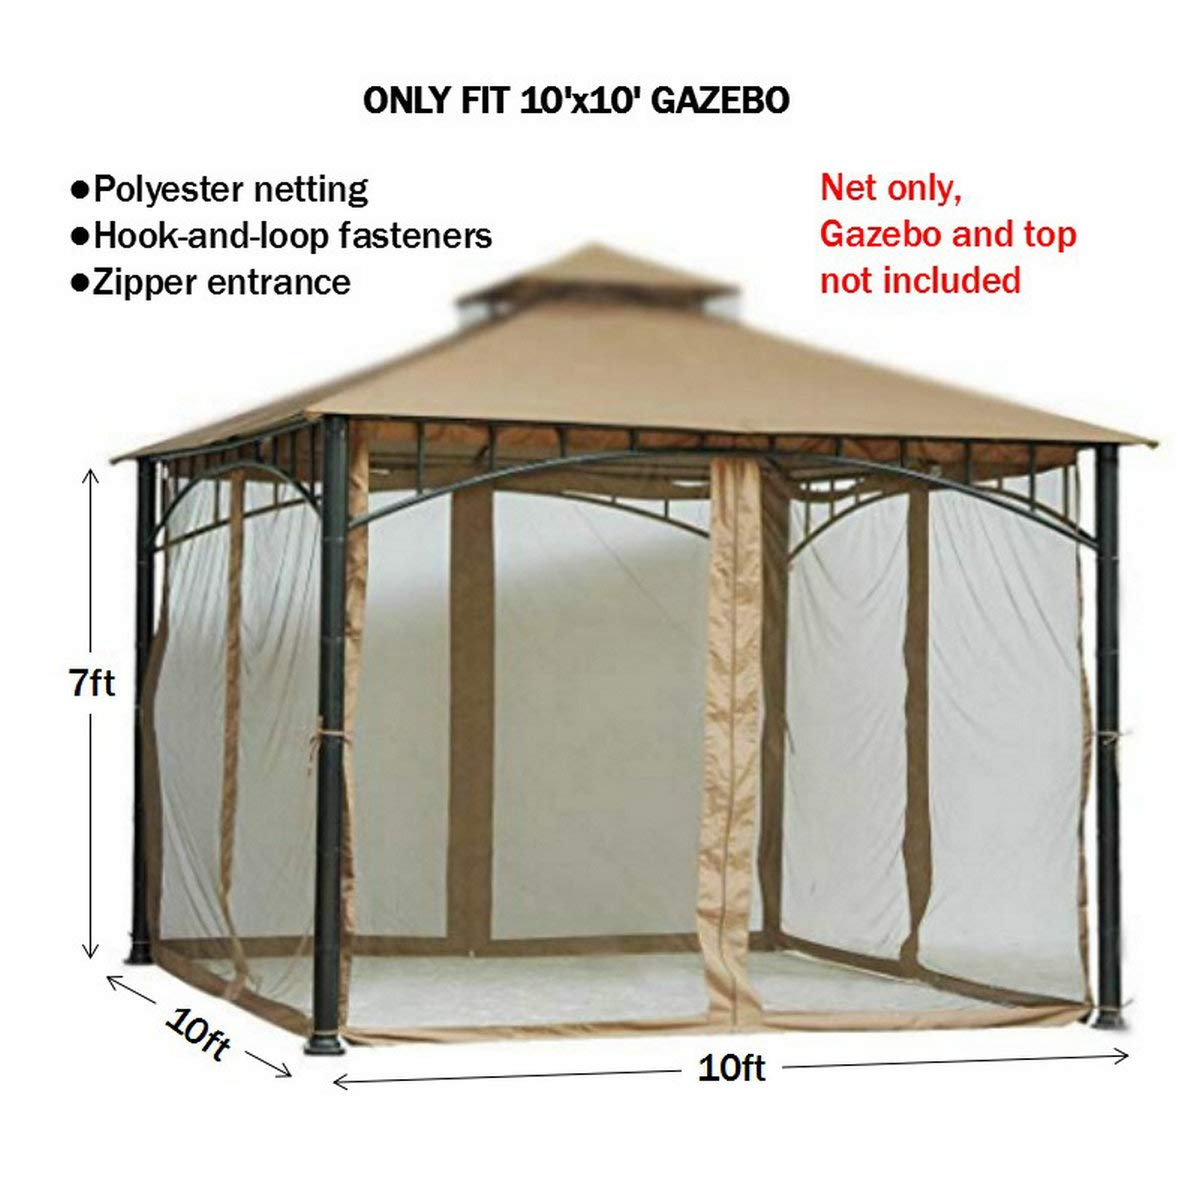 Replacement Mosquito Netting for Gazebo Size 10ft x 10 ft (Gazebo Mosquito Net Only) by PierSurplus (Image #2)